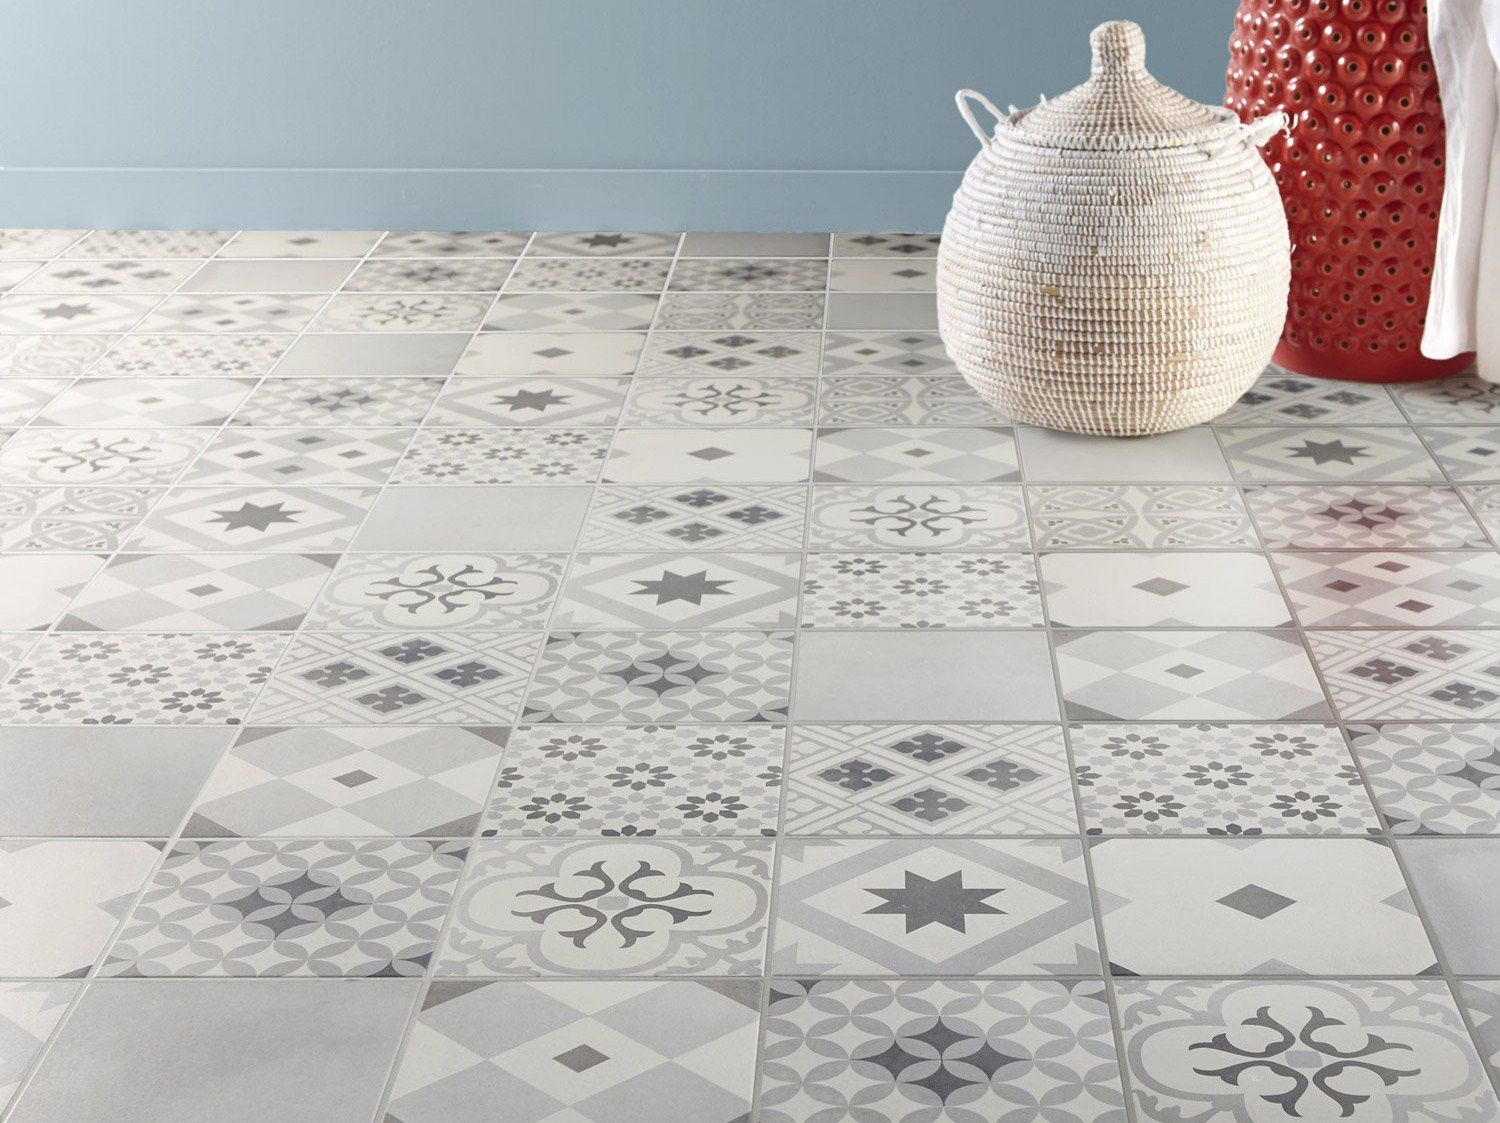 Carrelage design carrelage carreaux de ciment castorama moderne design po - Le roy merlin carrelage ...